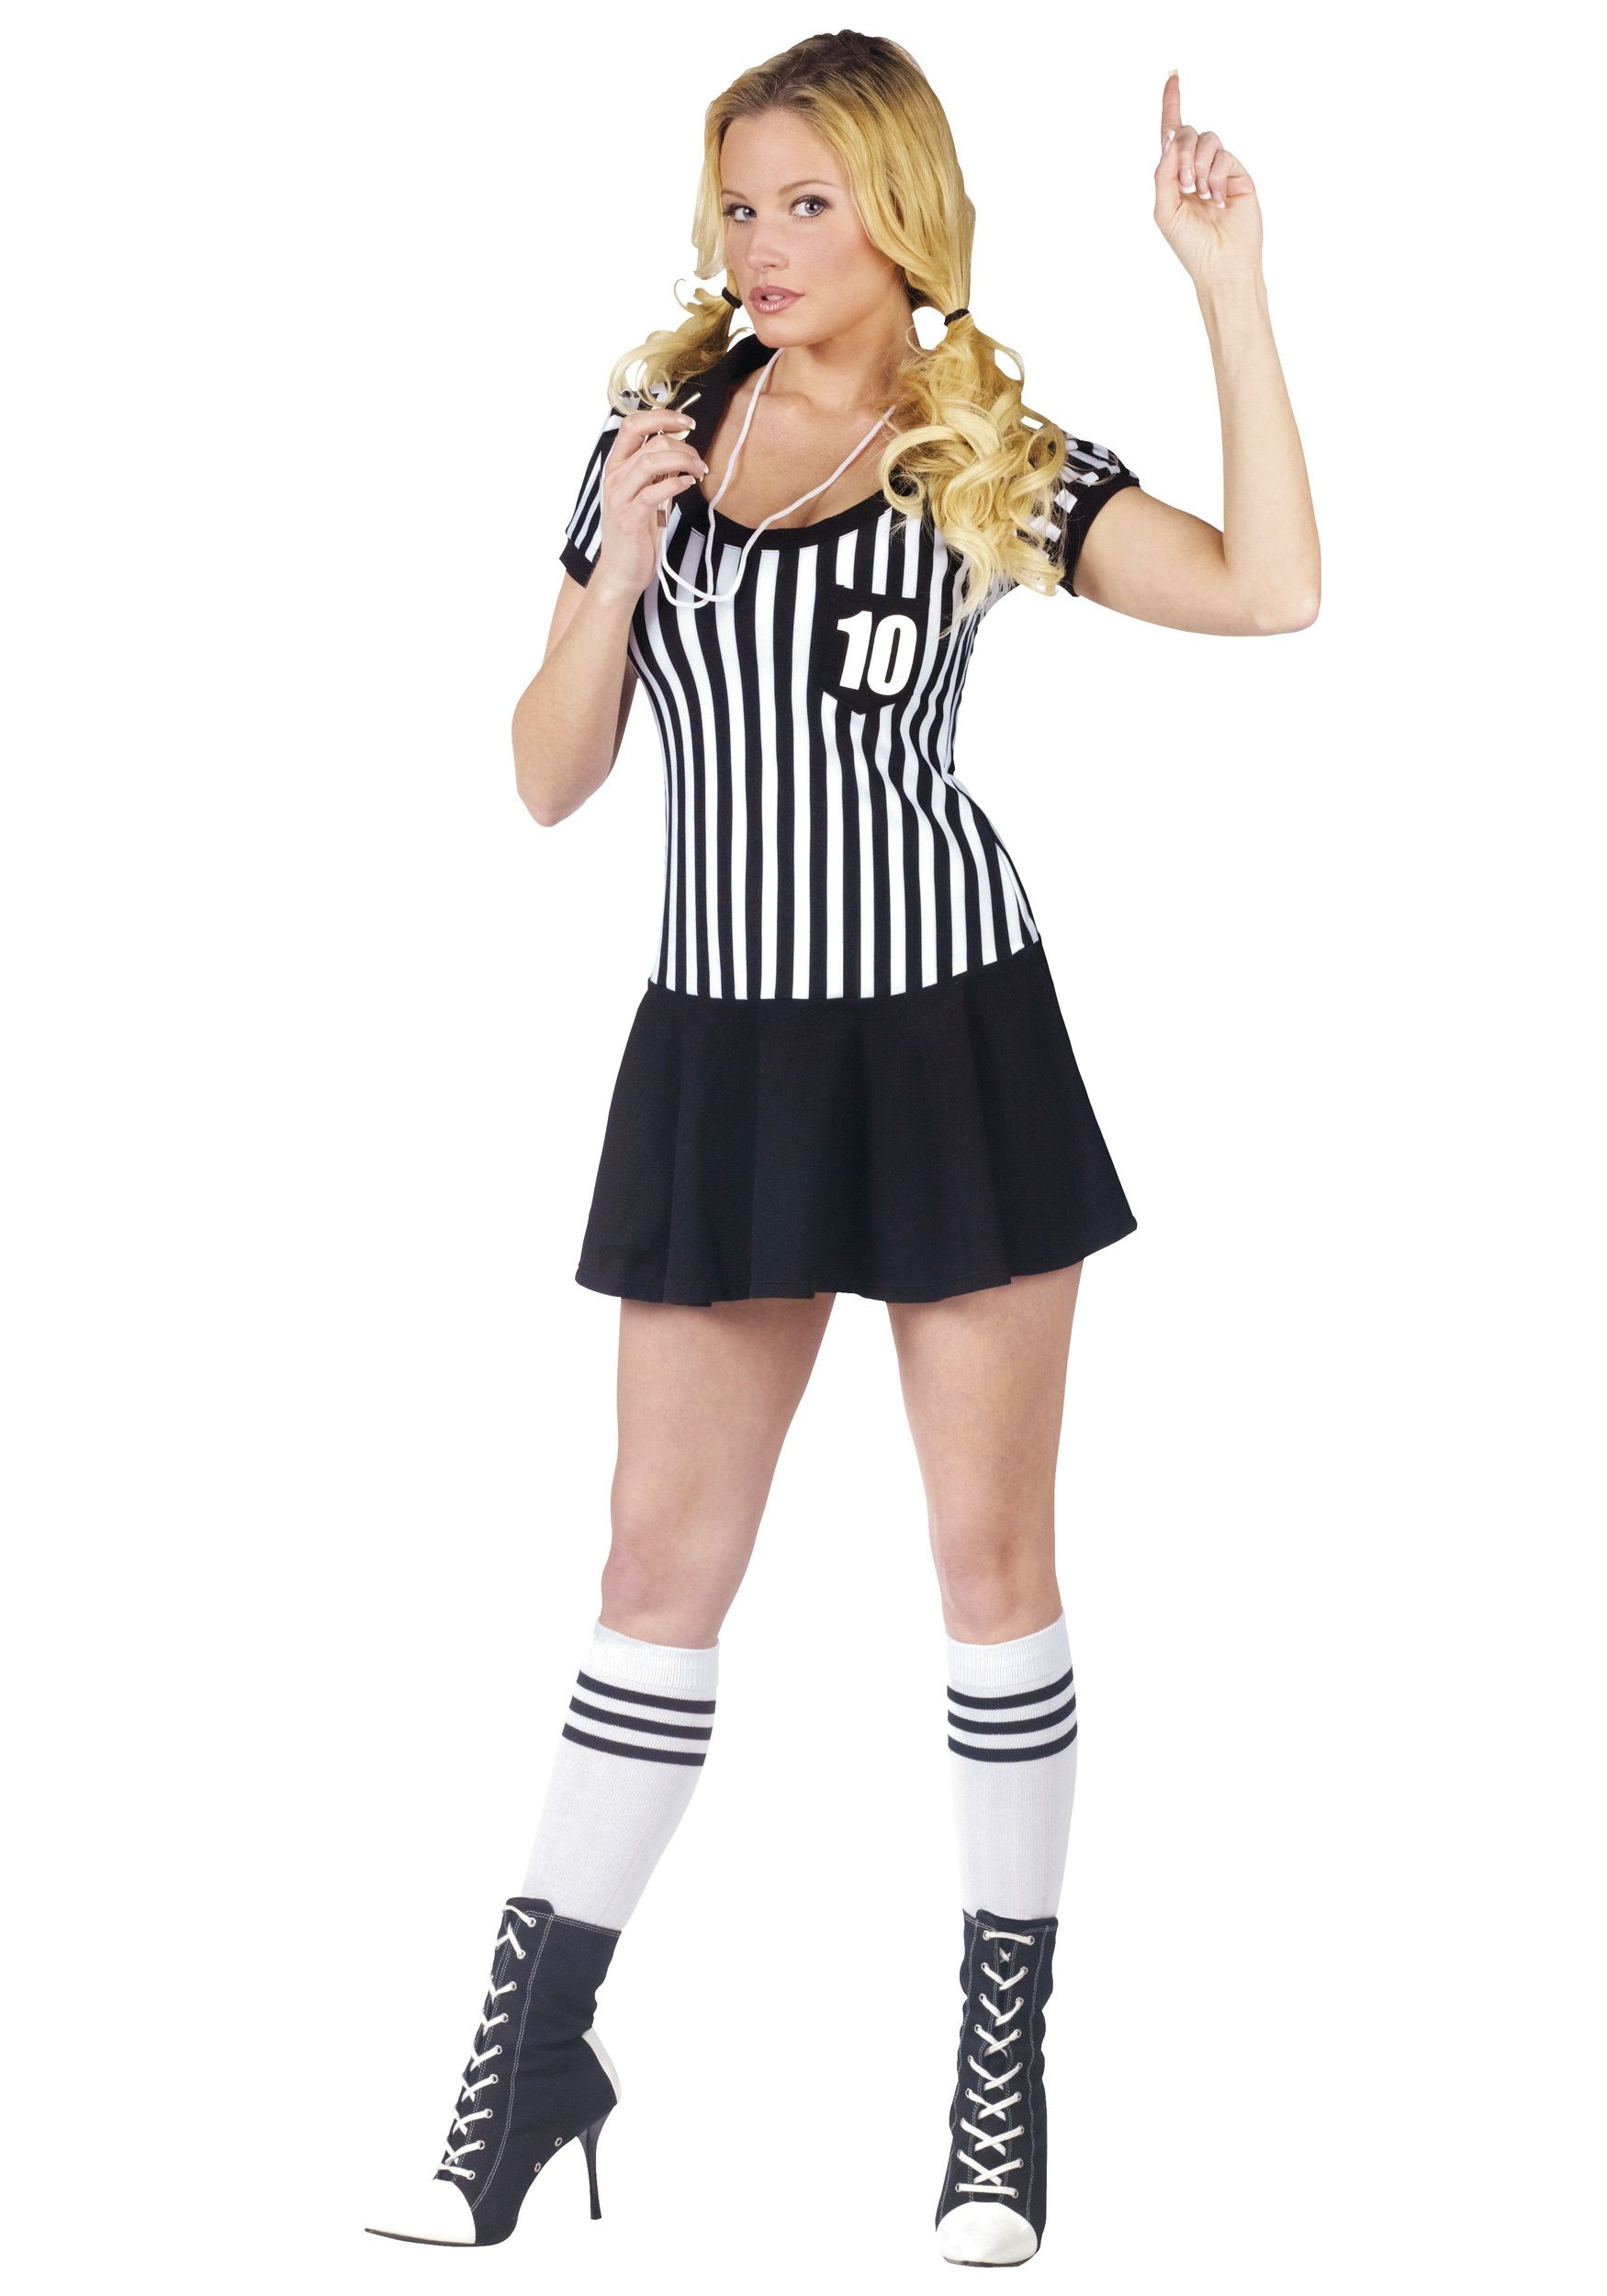 ref costumes for women | Home > Halloween Costume Ideas > Occupation ...